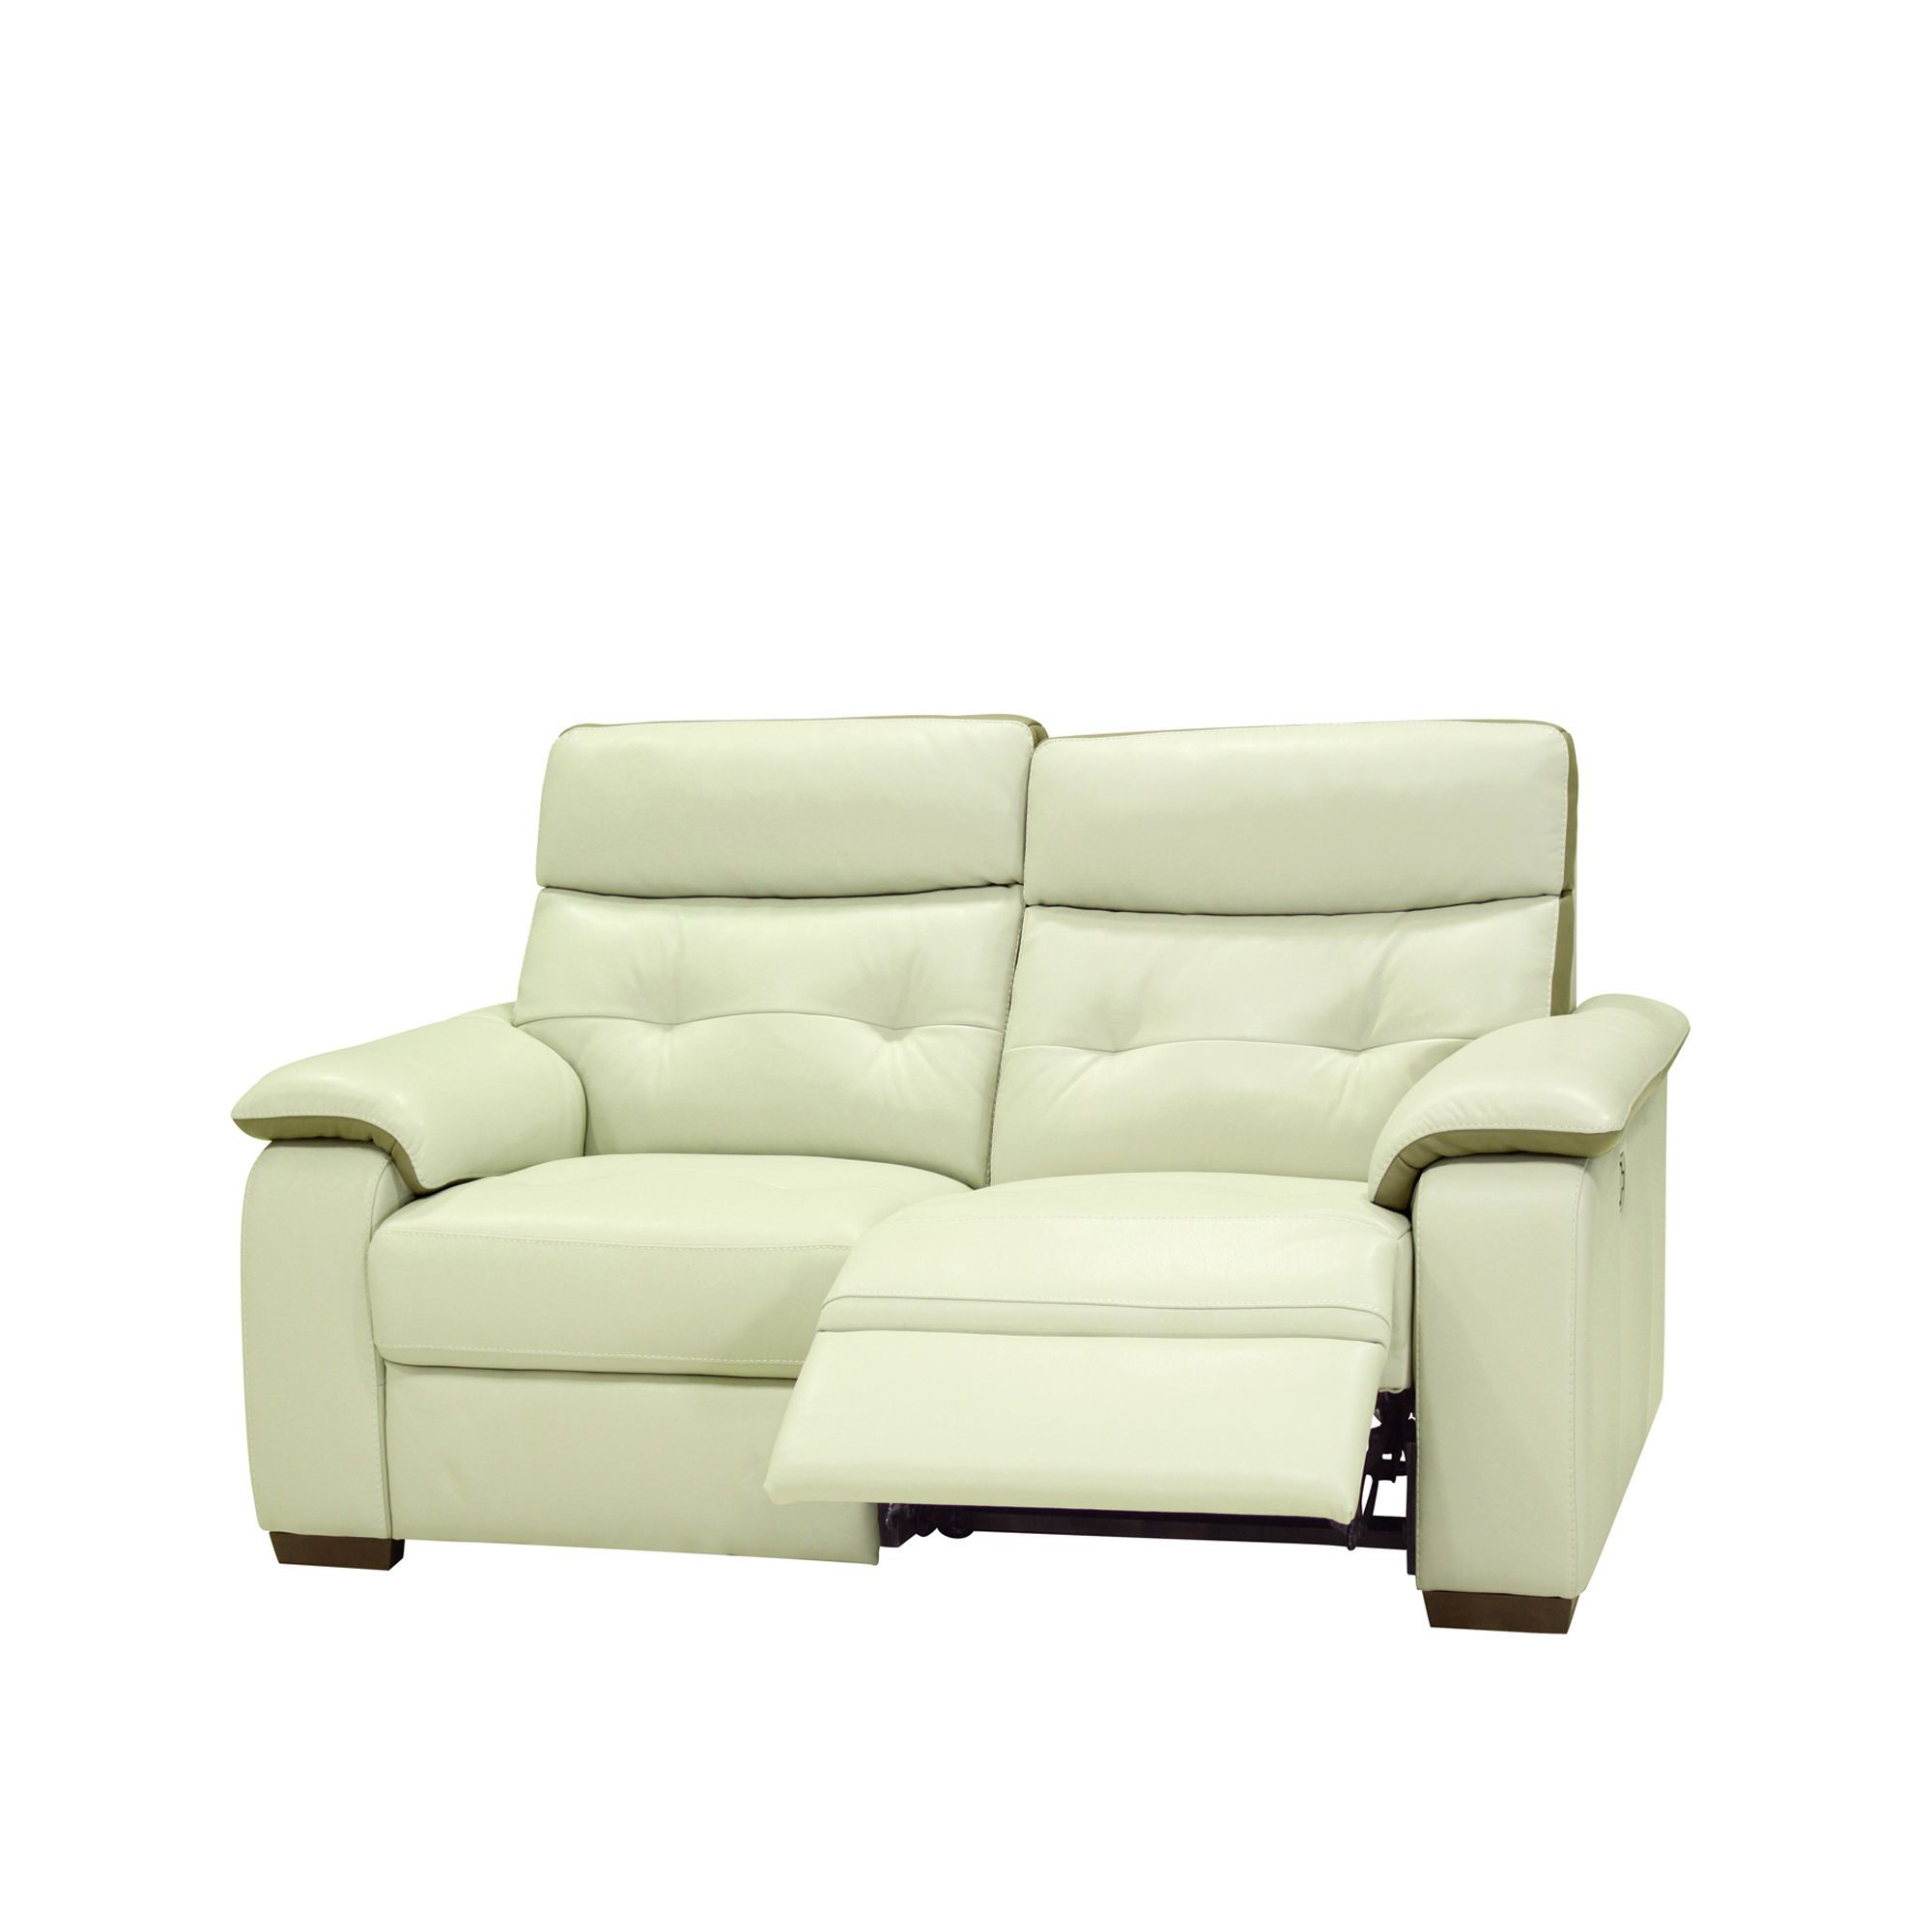 2 seat electric recliner sofa ligne roset snowdonia cookes collection hobart seater